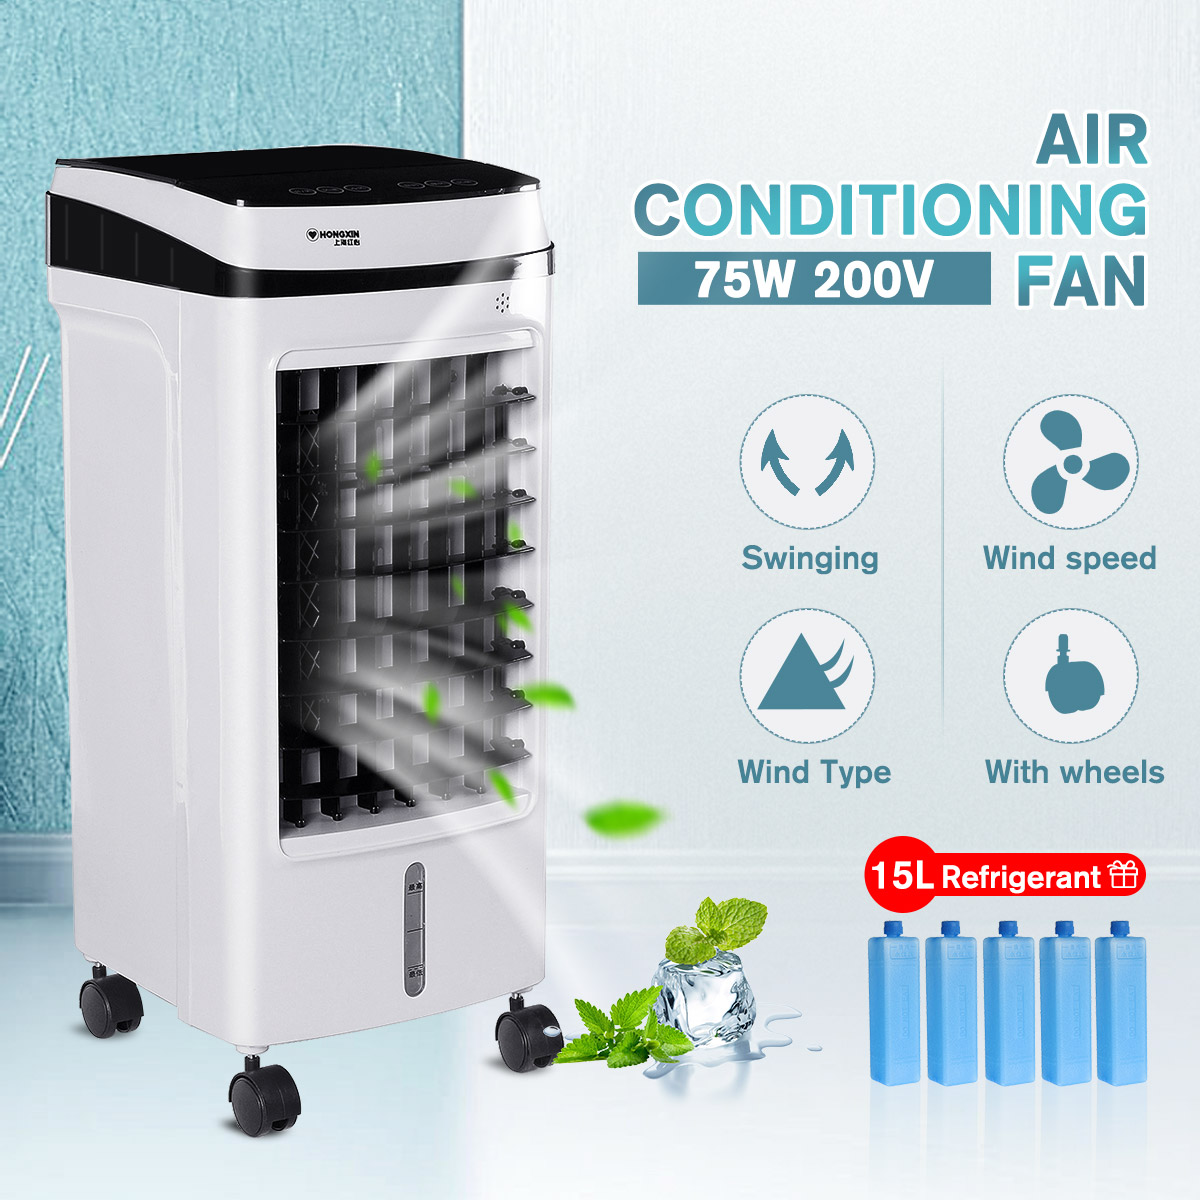 220V Portable Air Conditioner 75W Conditioning Fan Humidifier Cooler <font><b>15L</b></font> <font><b>Tank</b></font> Cooling Timed 3 Fan Modes Cooling Fan Humidifier image